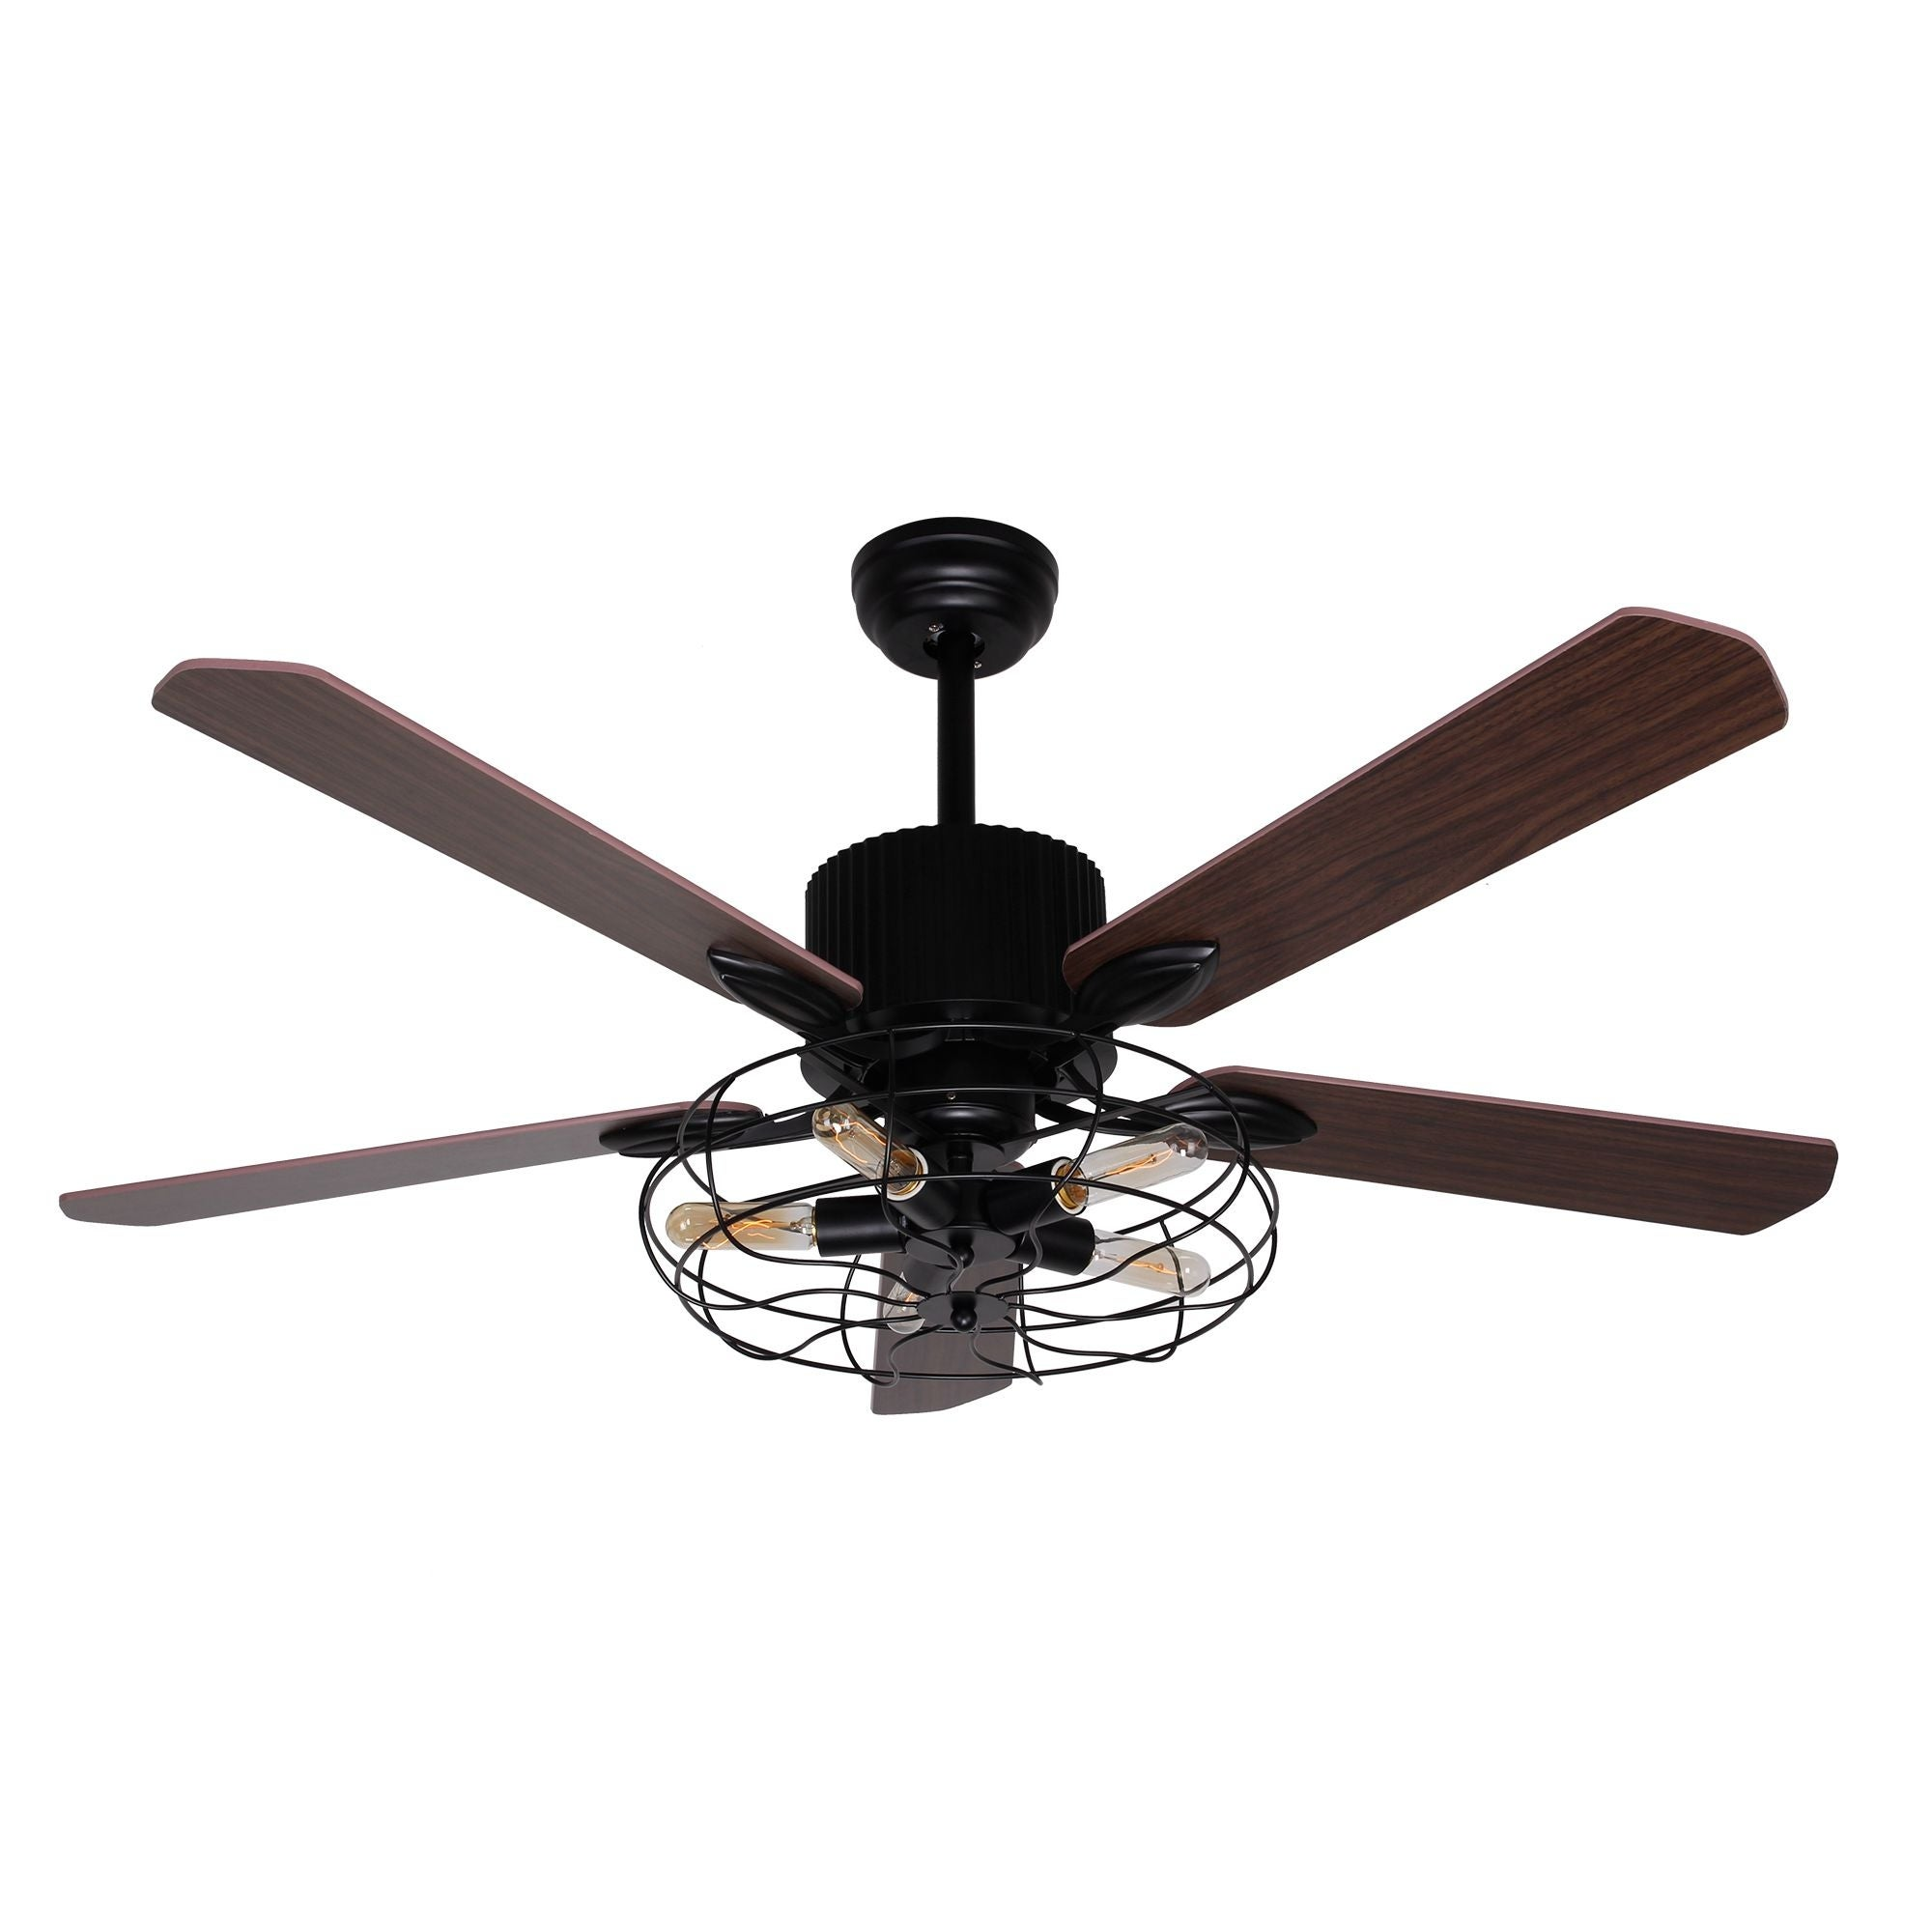 5 Light Black 52 Inch Brown Wood Ceiling Fan Free Shipping Today 21657565